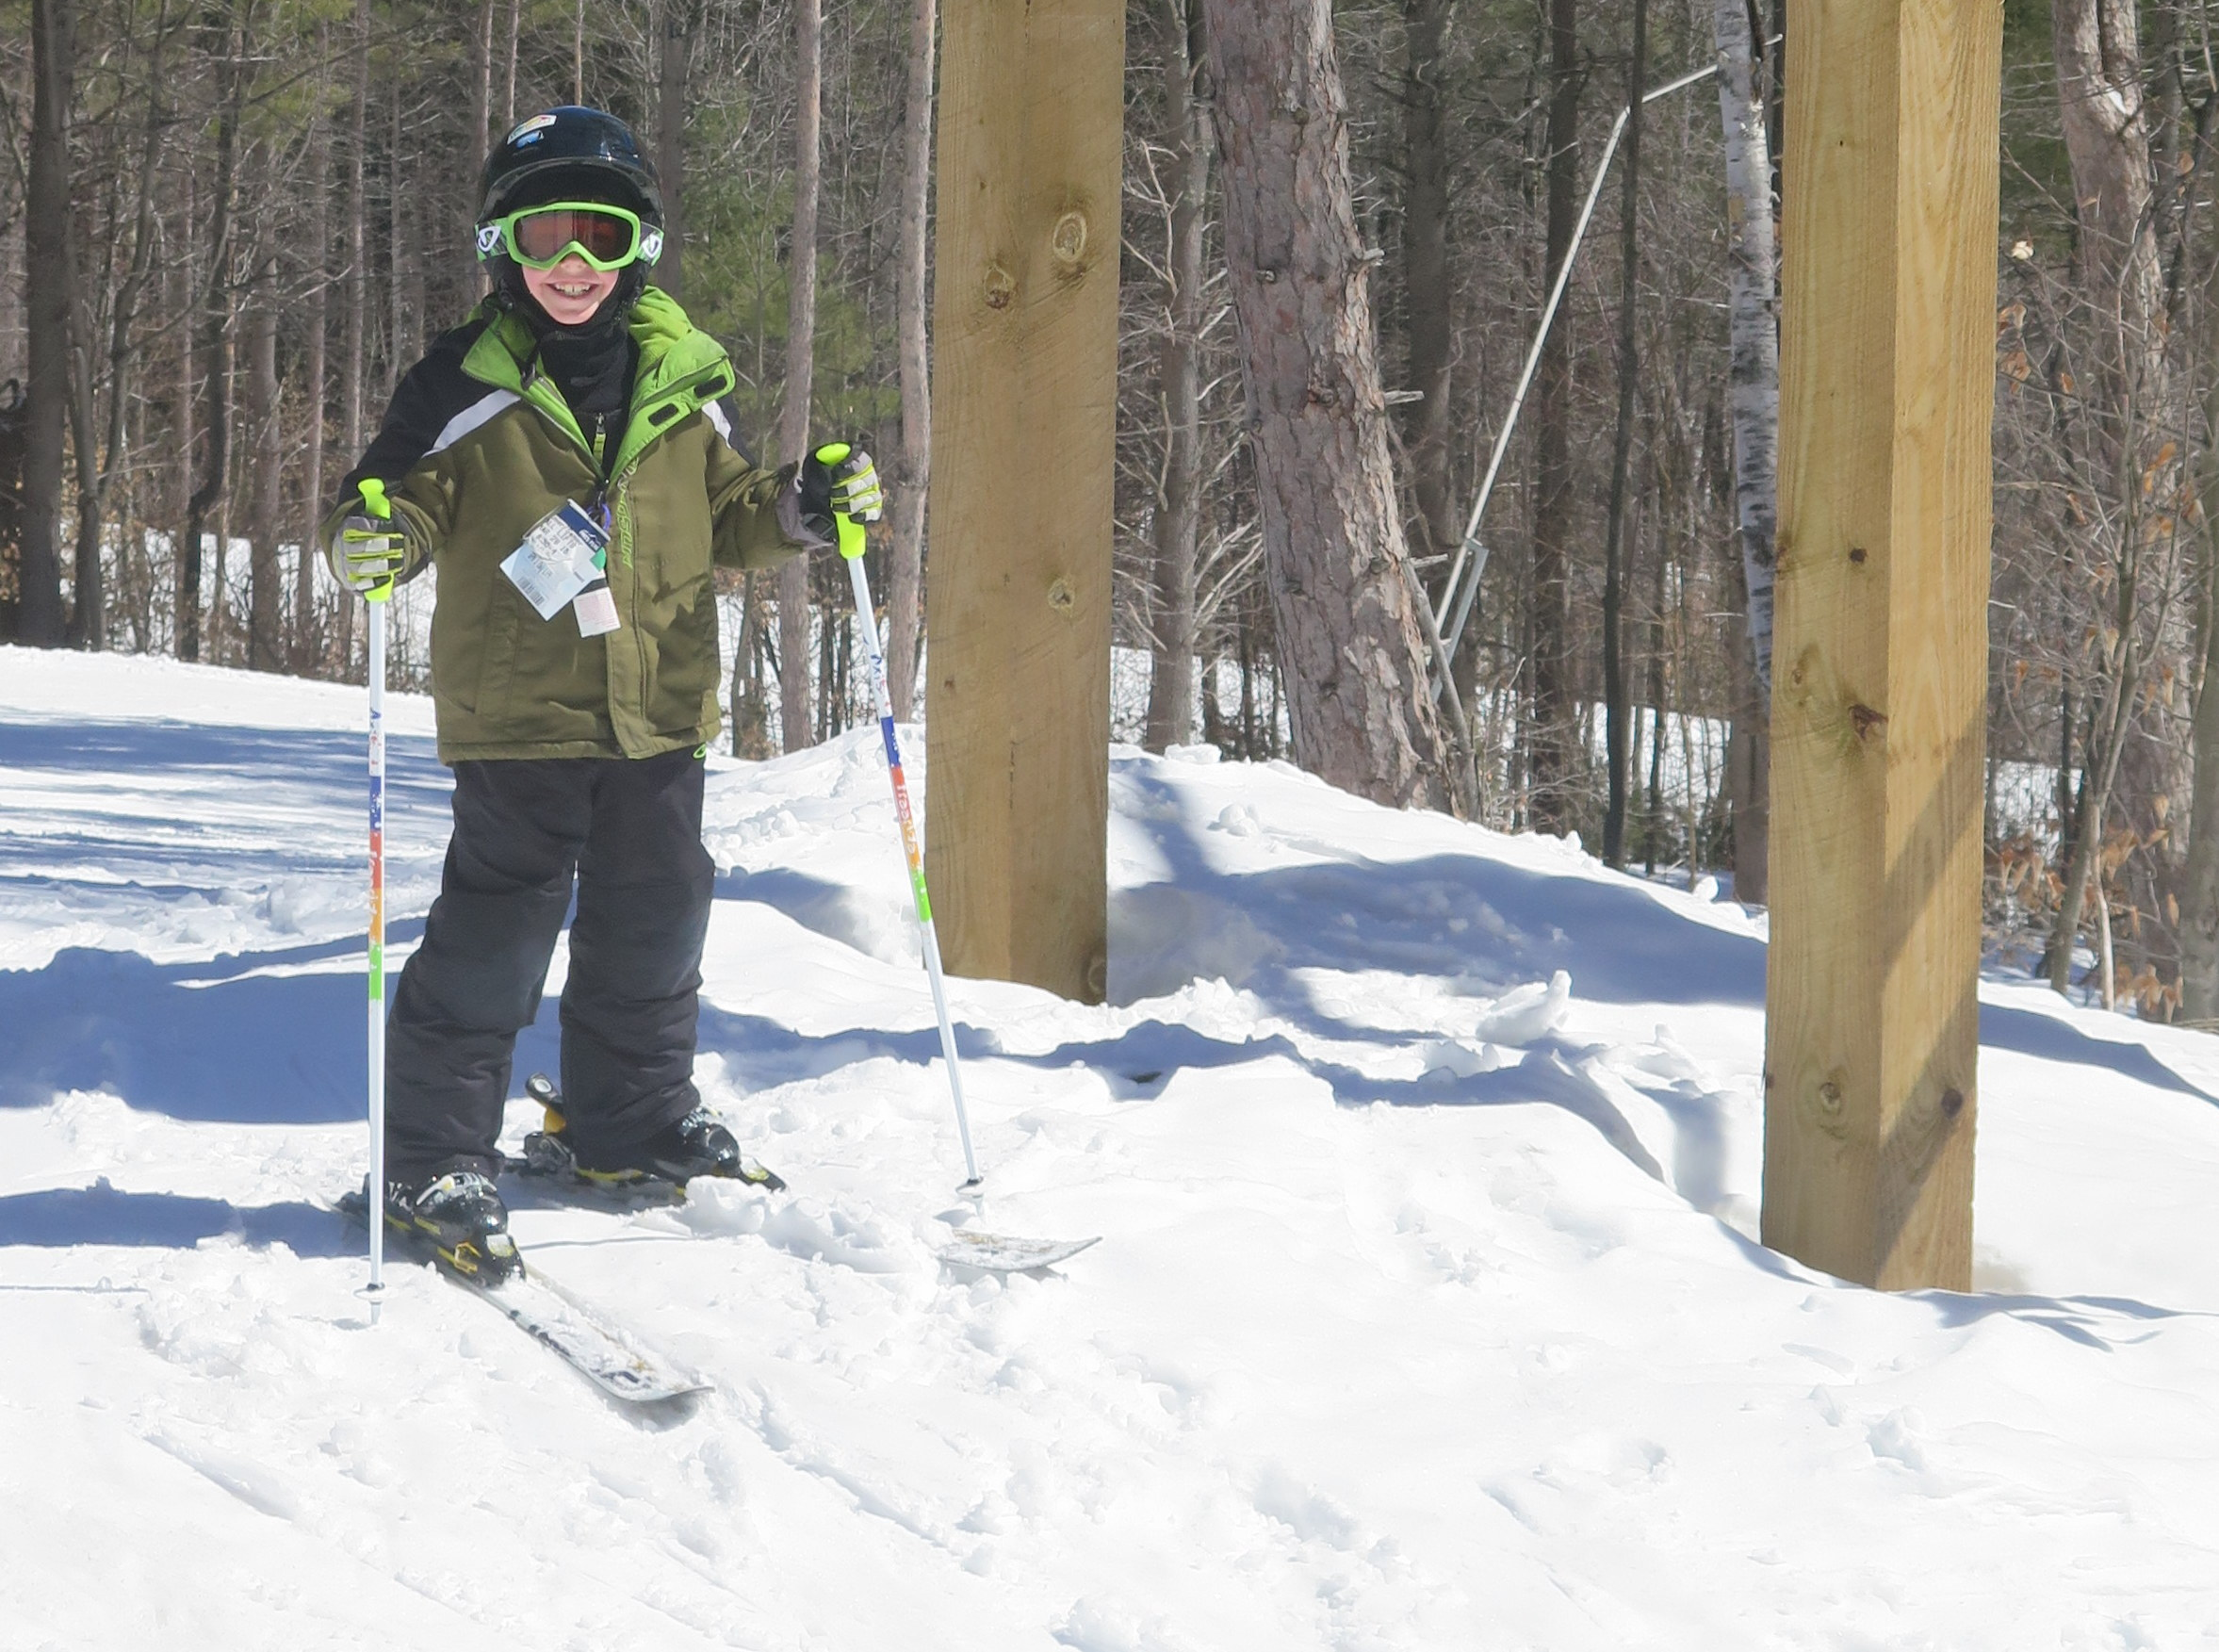 ski cheap at mt sunapee on easter sunday boston living on the cheap